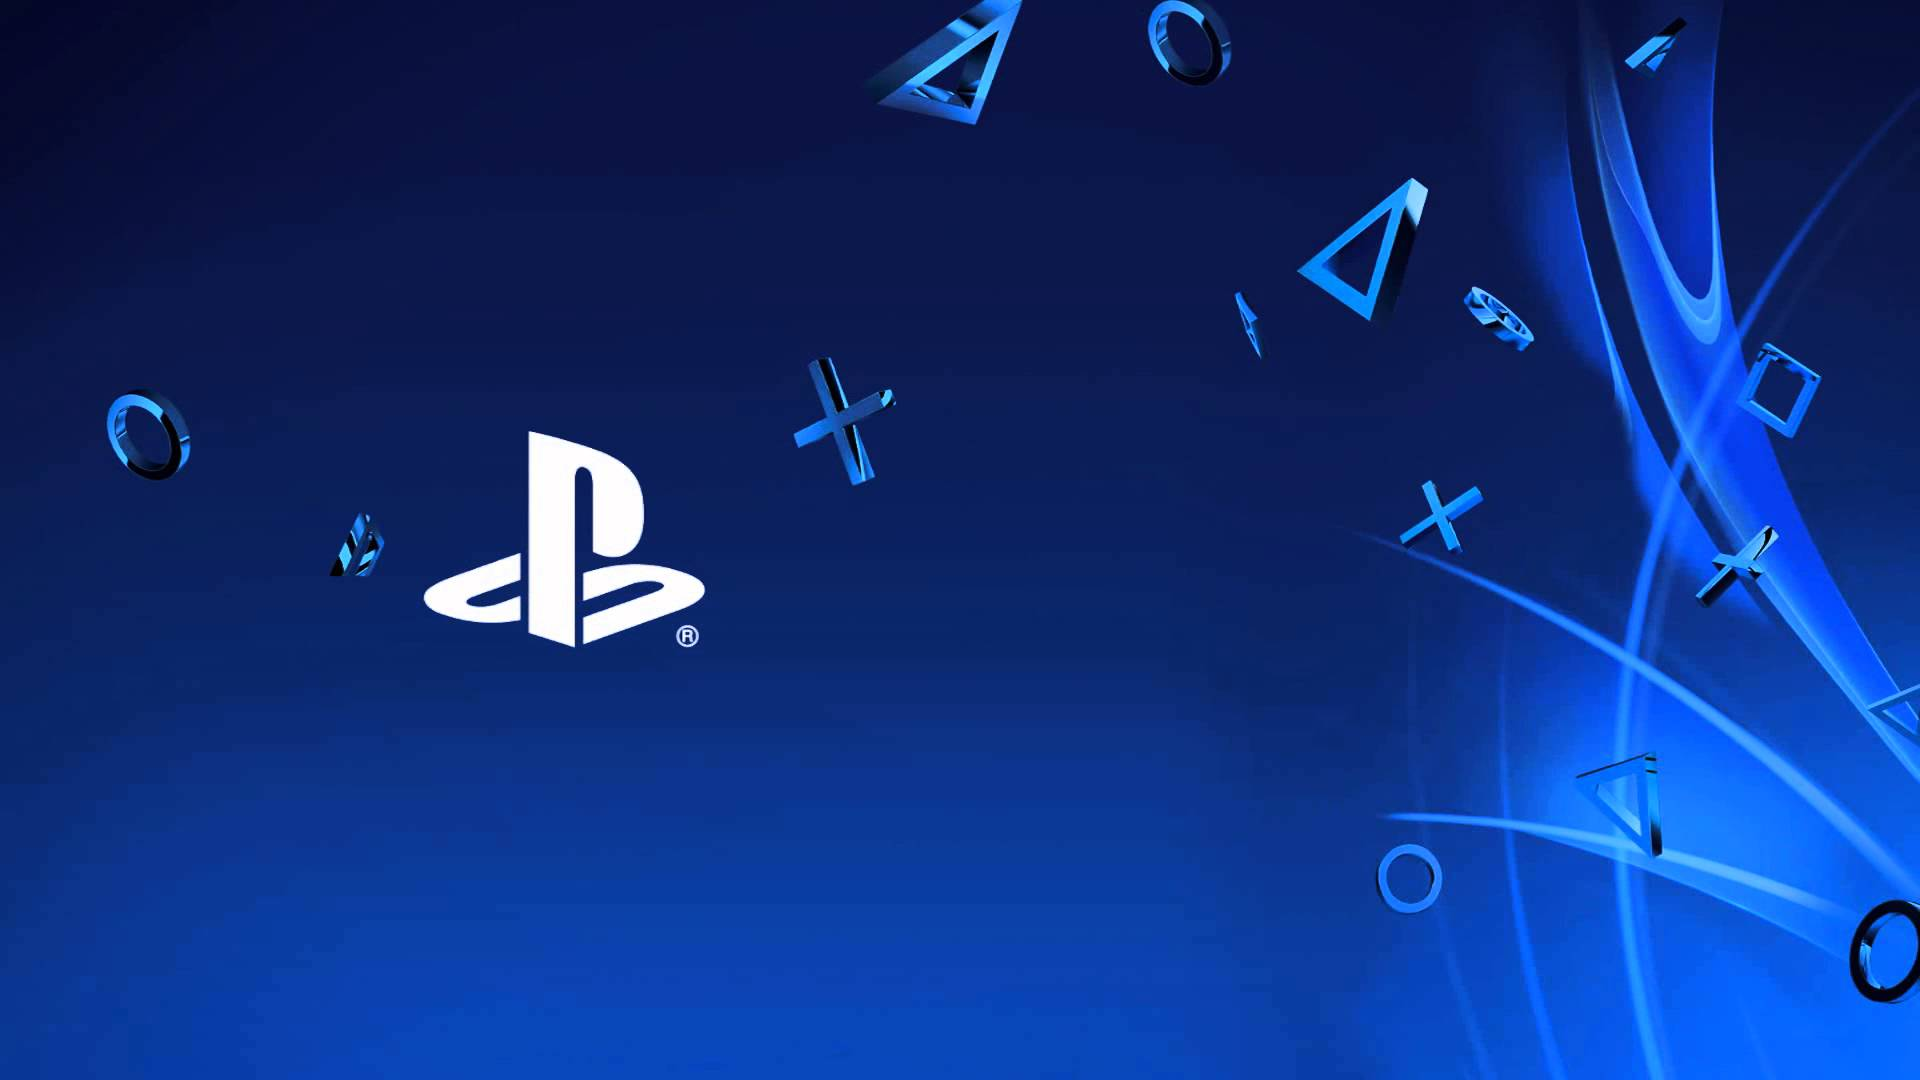 Ps4 Logo wallpaper | 1920x1080 | #67810